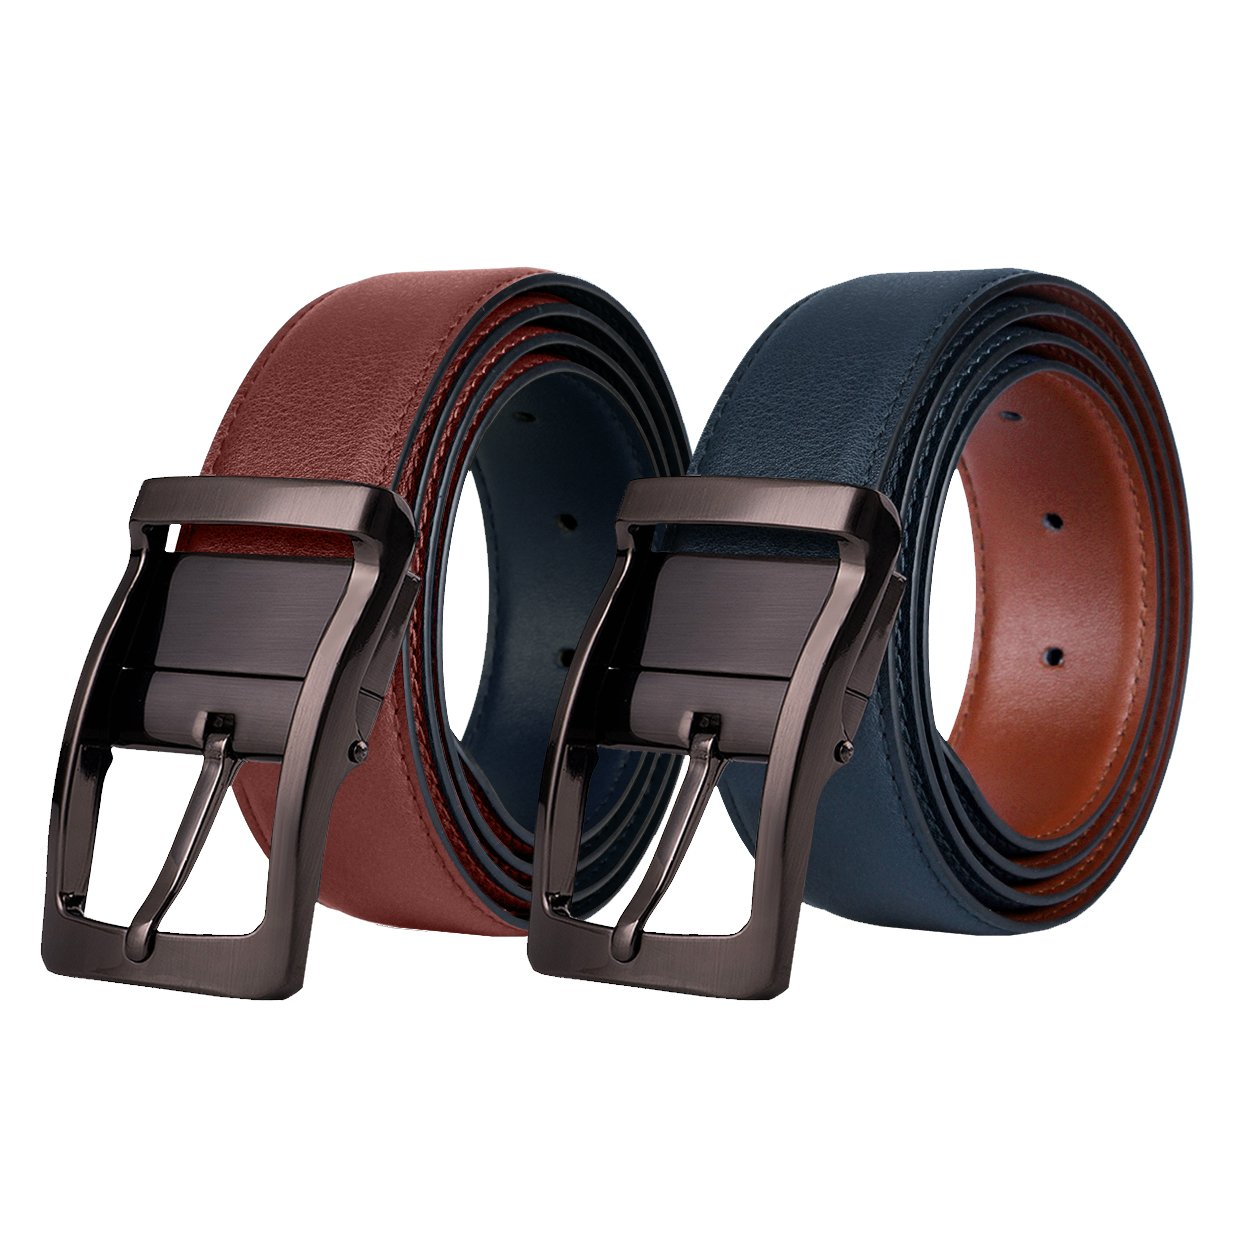 Mens Leather Belts, Reversible Dress Belts with Rotated Buckle BESTKEE